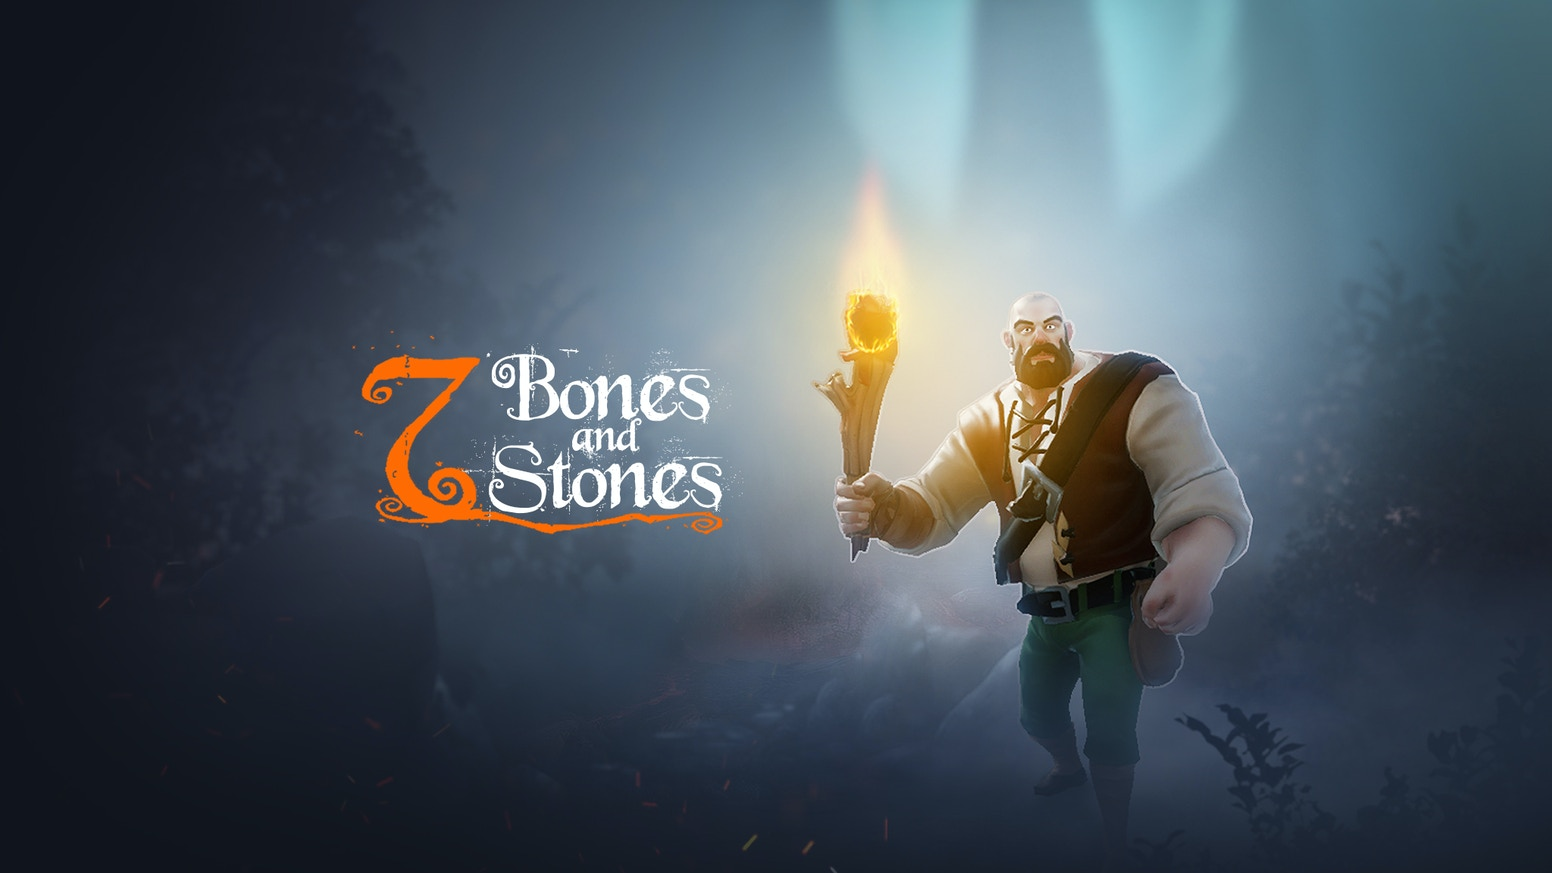 7 Bones and 7 Stones - The Ritual, 1v4 multiplayer game is now on Kickstarter!